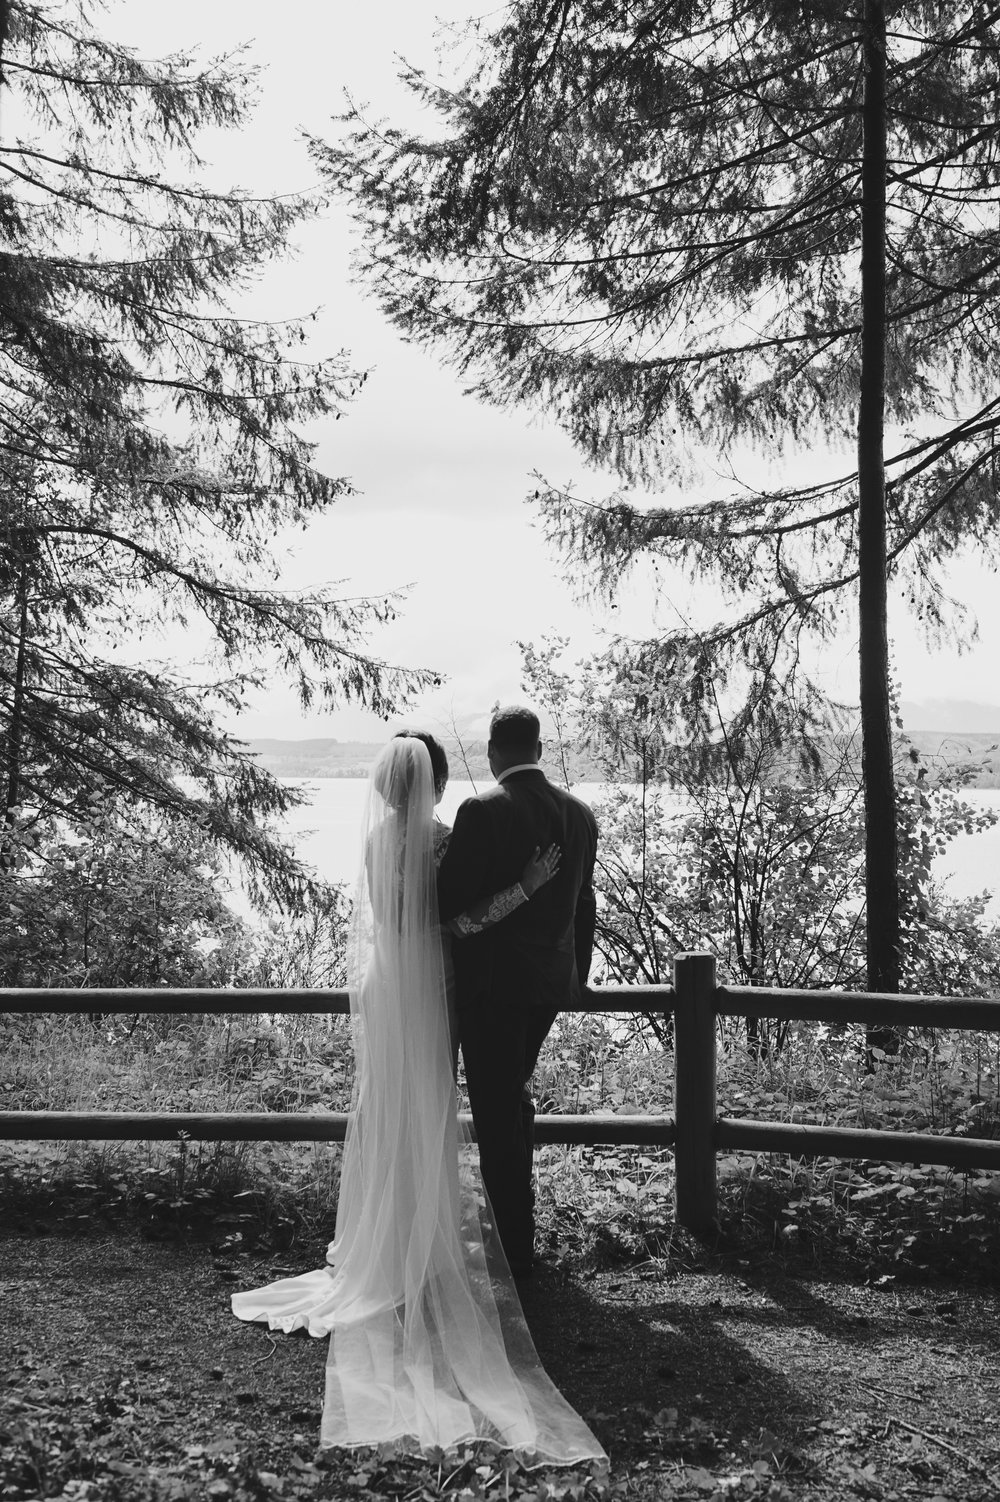 Woodsy Wedding_Kitsap Memorial State Park Wedding_Kelsey Lane Photography_bride and groom in the woods